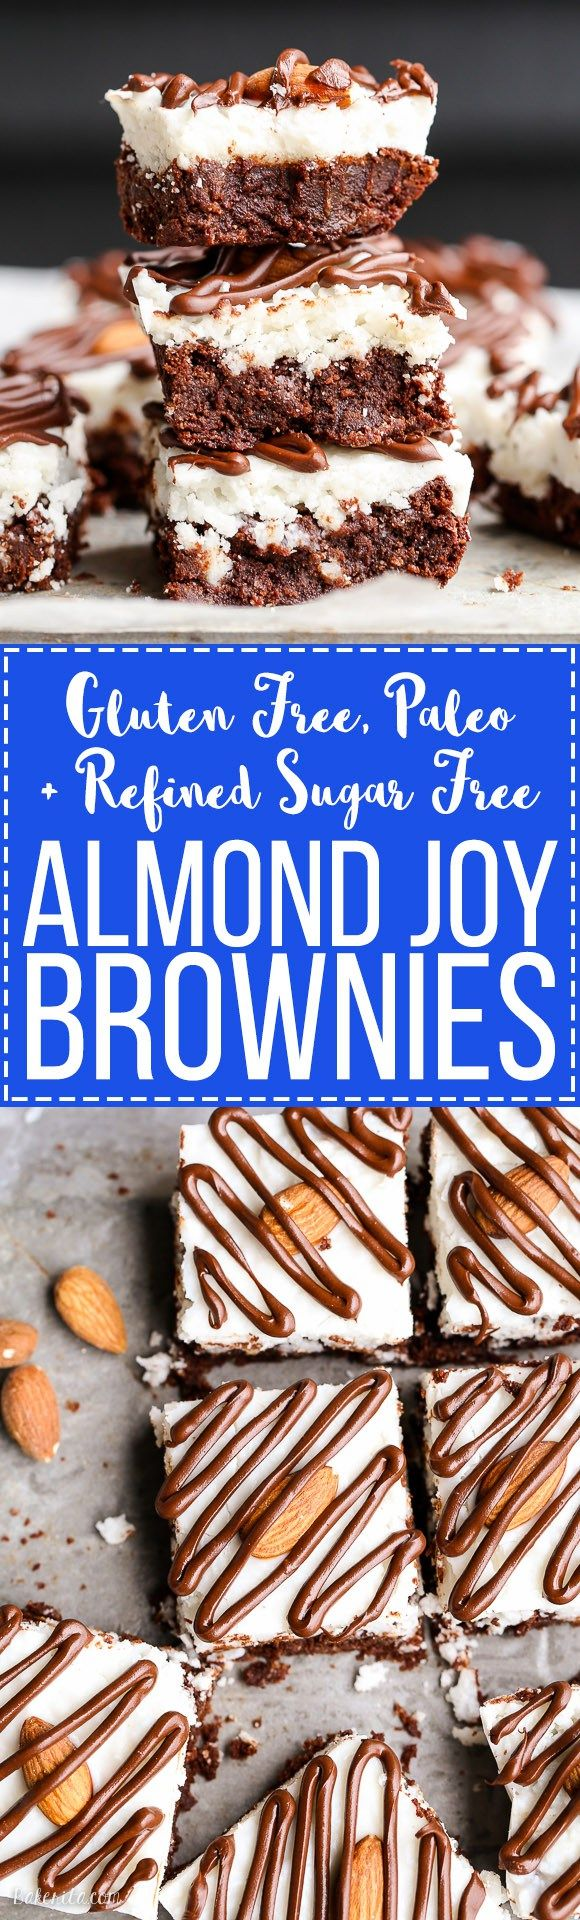 These Almond Joy Brownies have a coconut butter topping and a drizzle of dark chocolate - you'd never guess that these indulgent brownies are gluten-free, refined sugar-free, and Paleo!